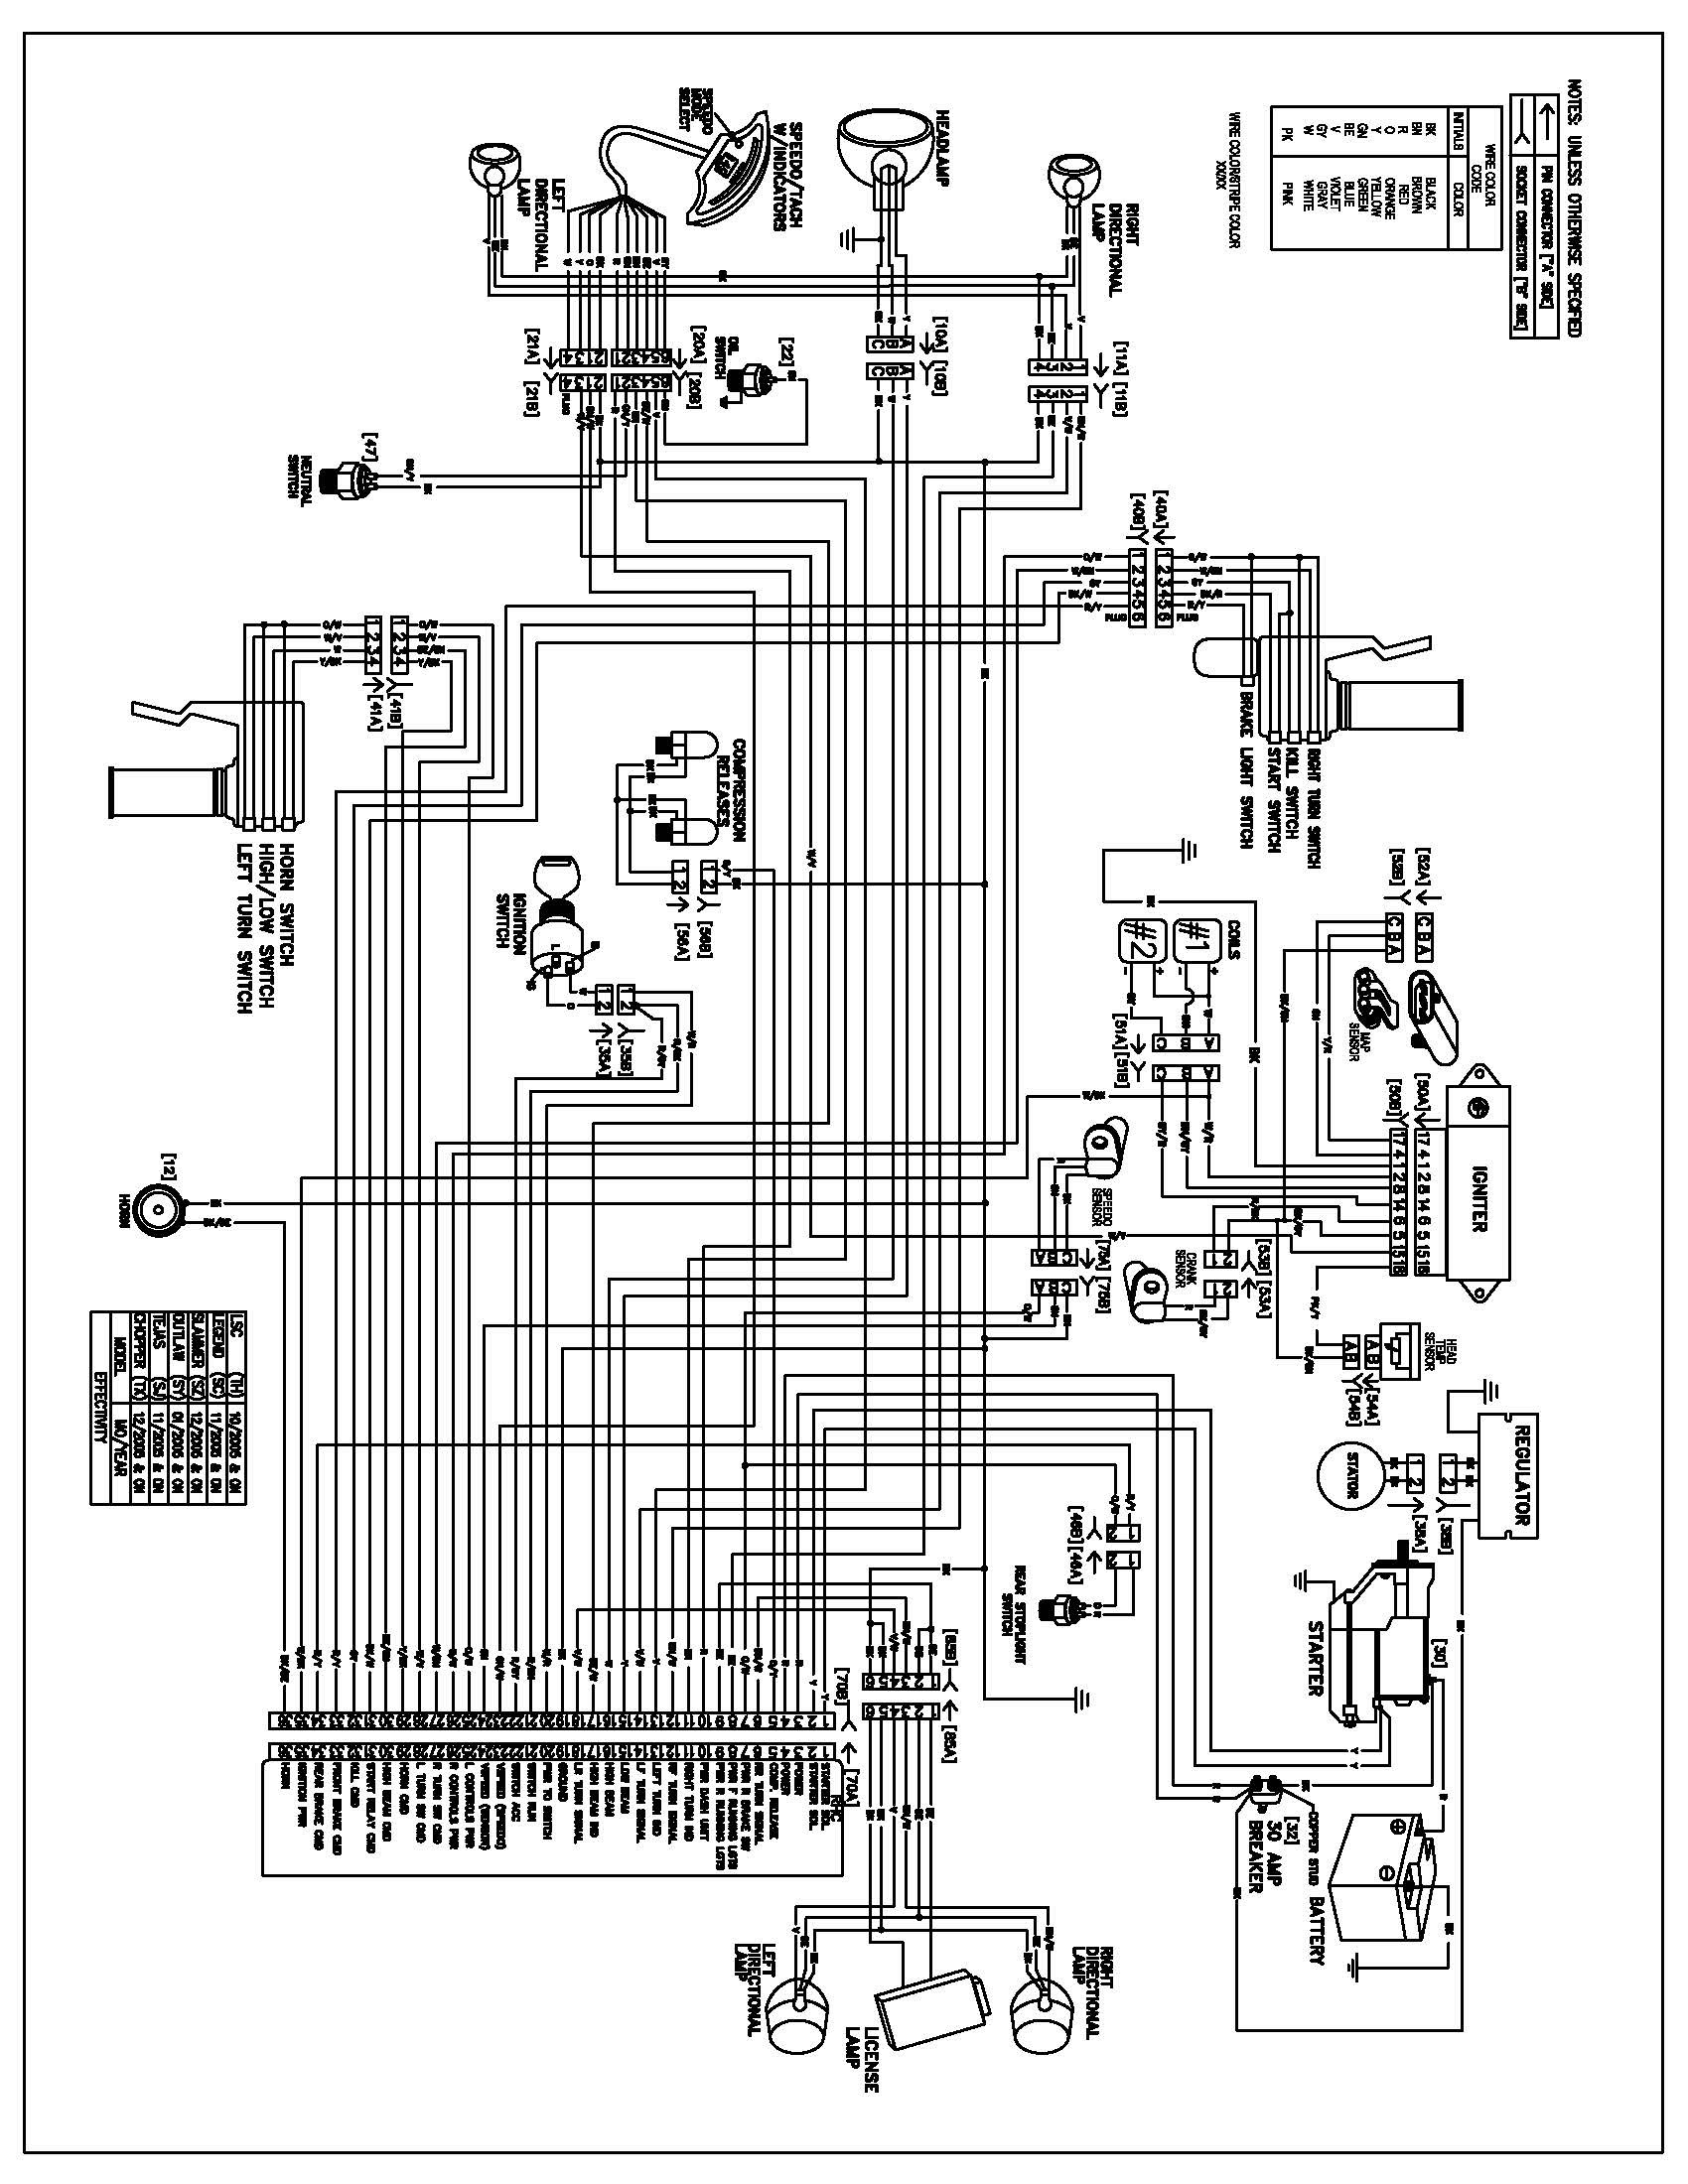 19.5 Horse Briggs Wiring Diagram Diagram] 43cc Gas Chopper Wiring Diagram Full Version Hd Of 19.5 Horse Briggs Wiring Diagram